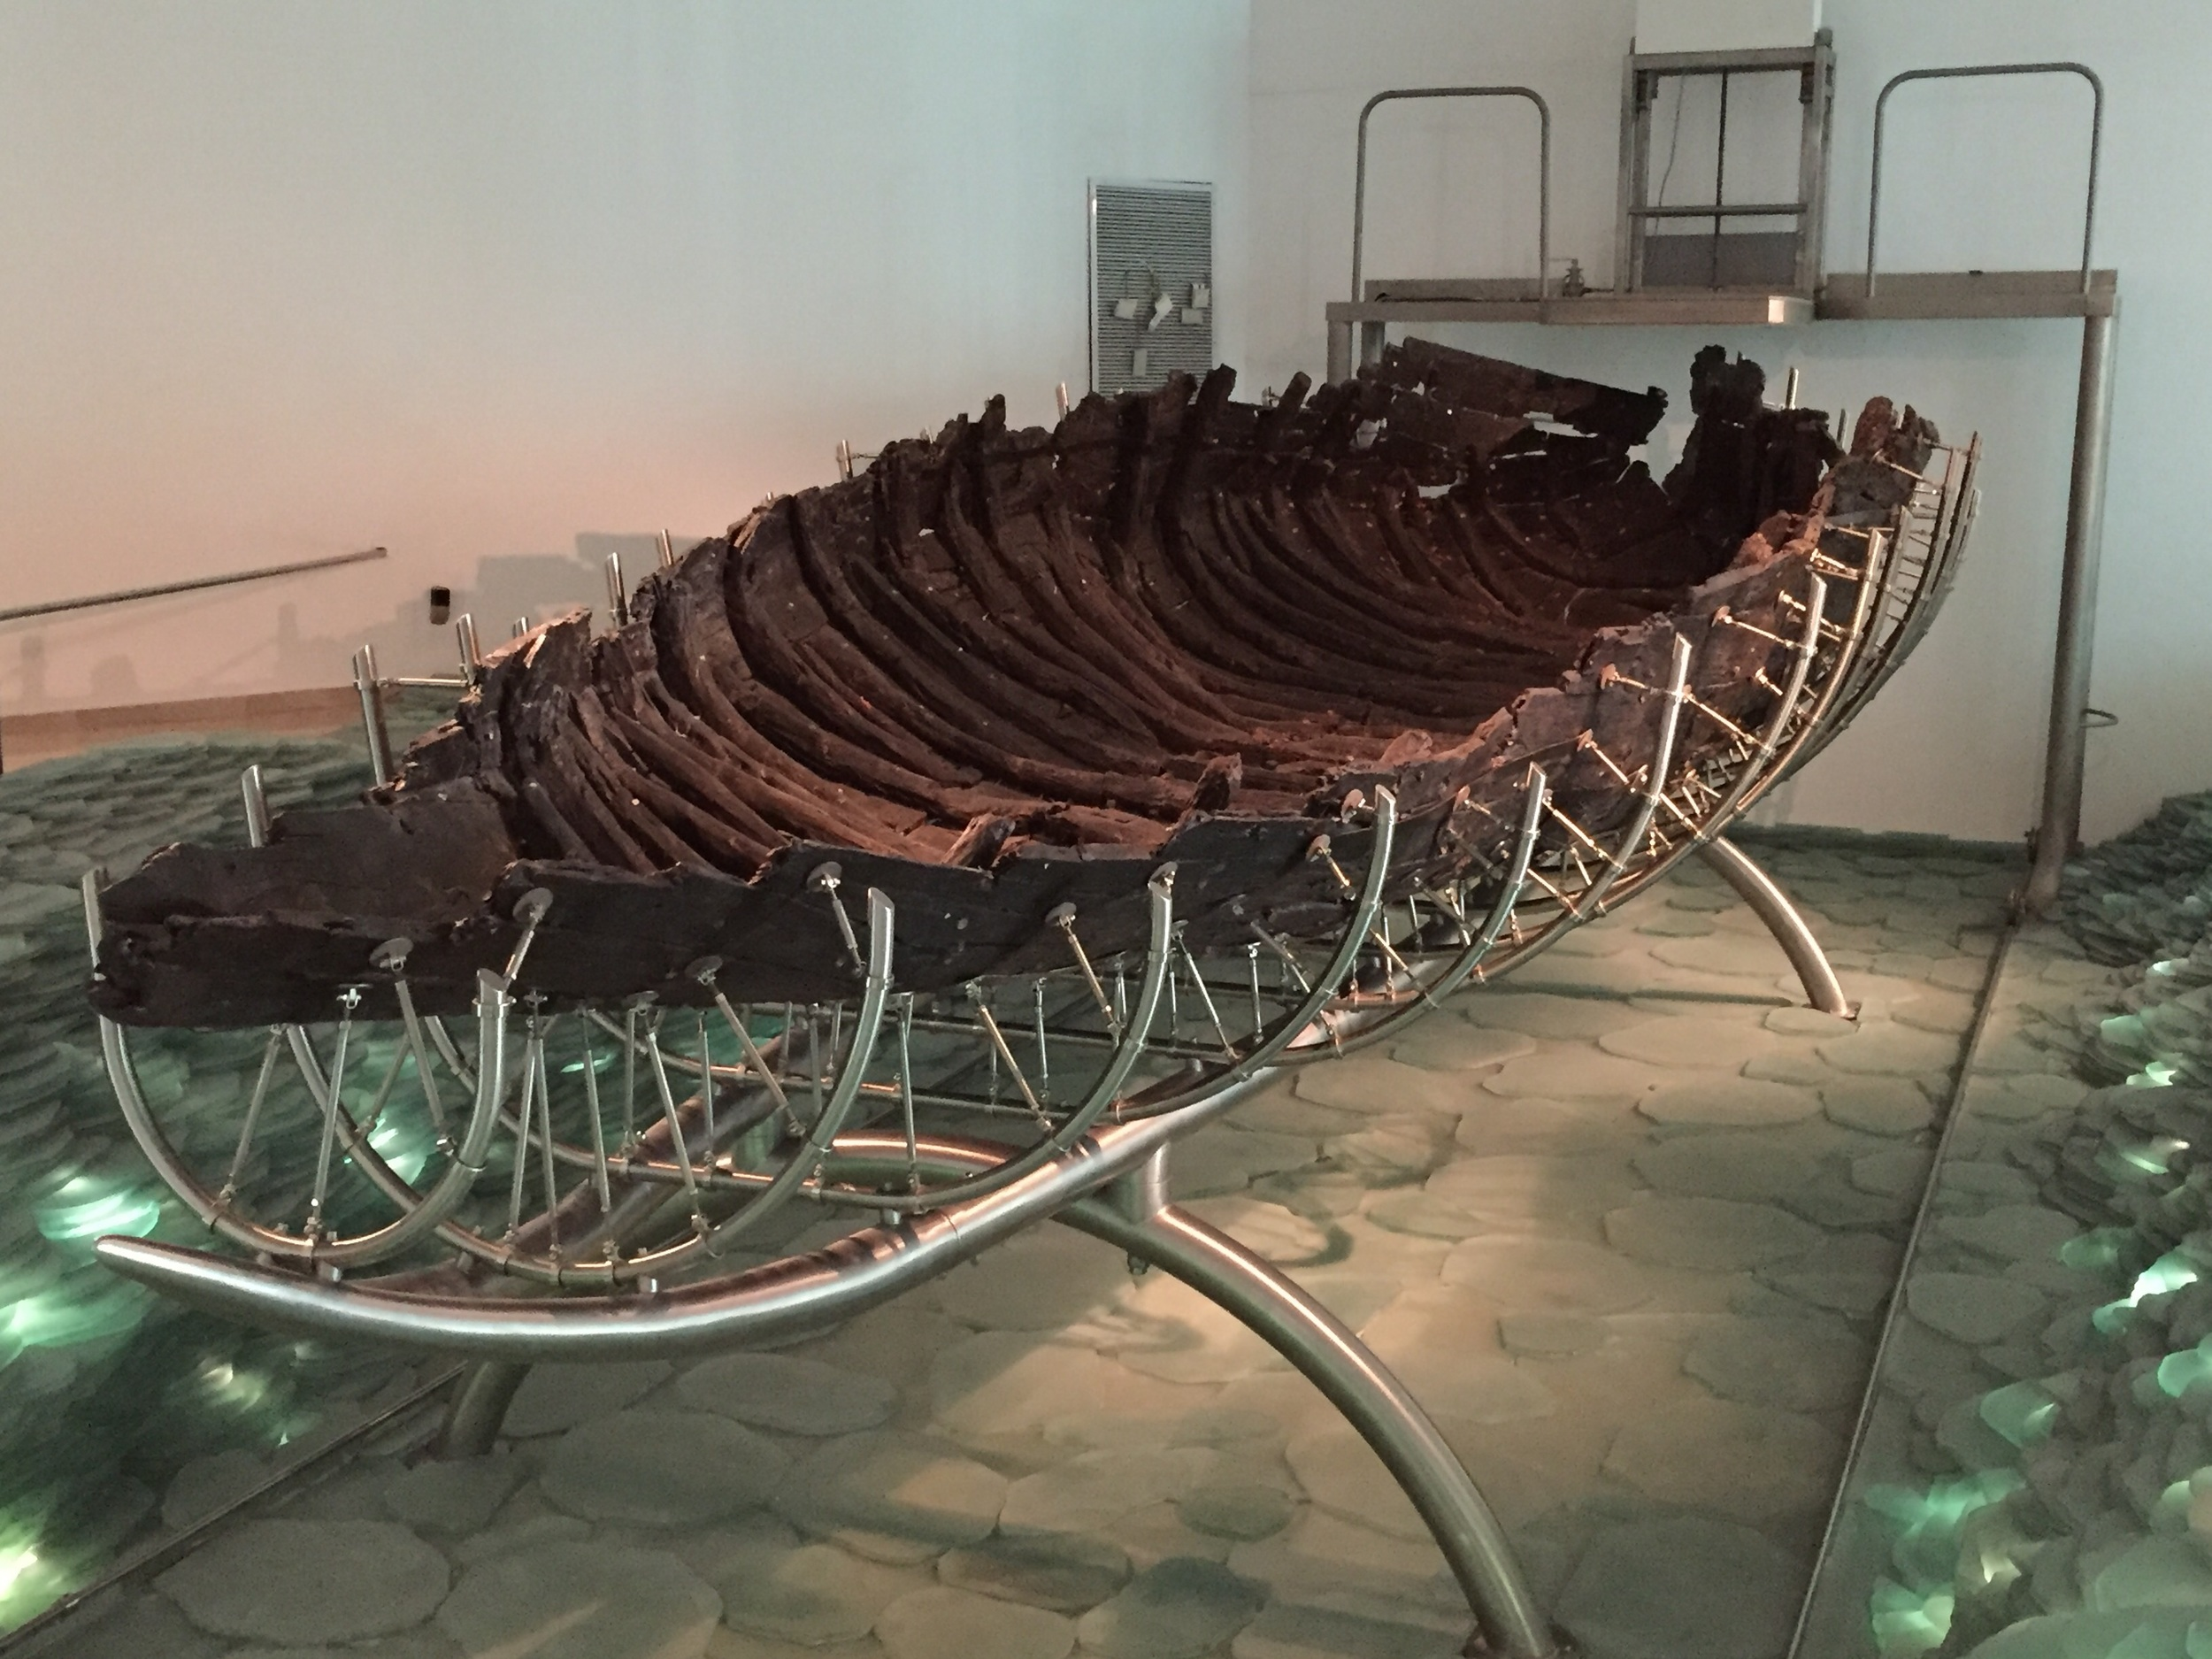 A 2,000 year old boat from the time of Jesus.